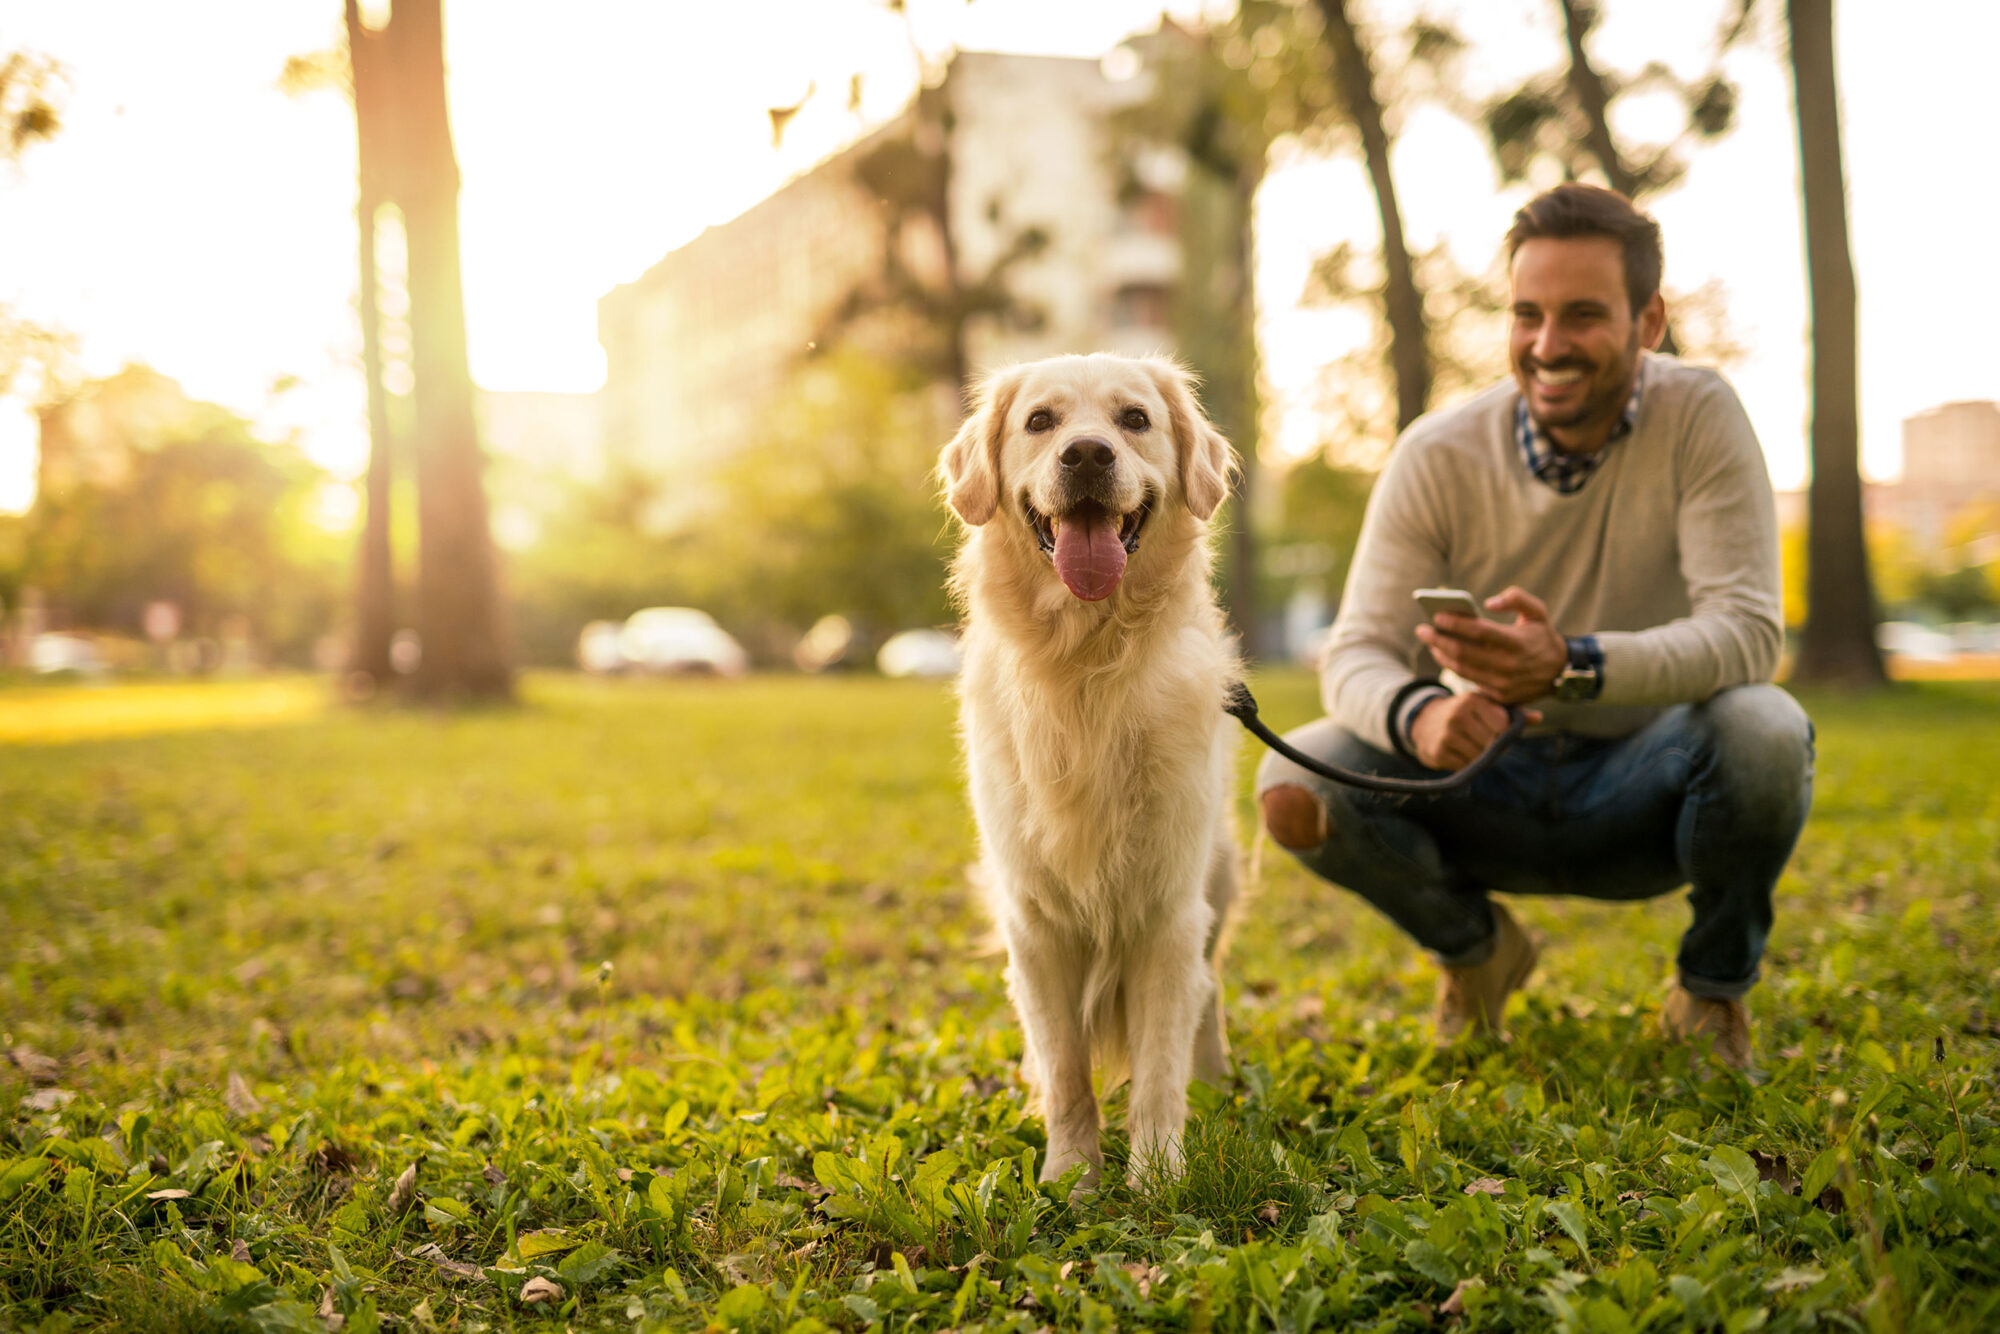 Man with golden retriever at a park in the evening